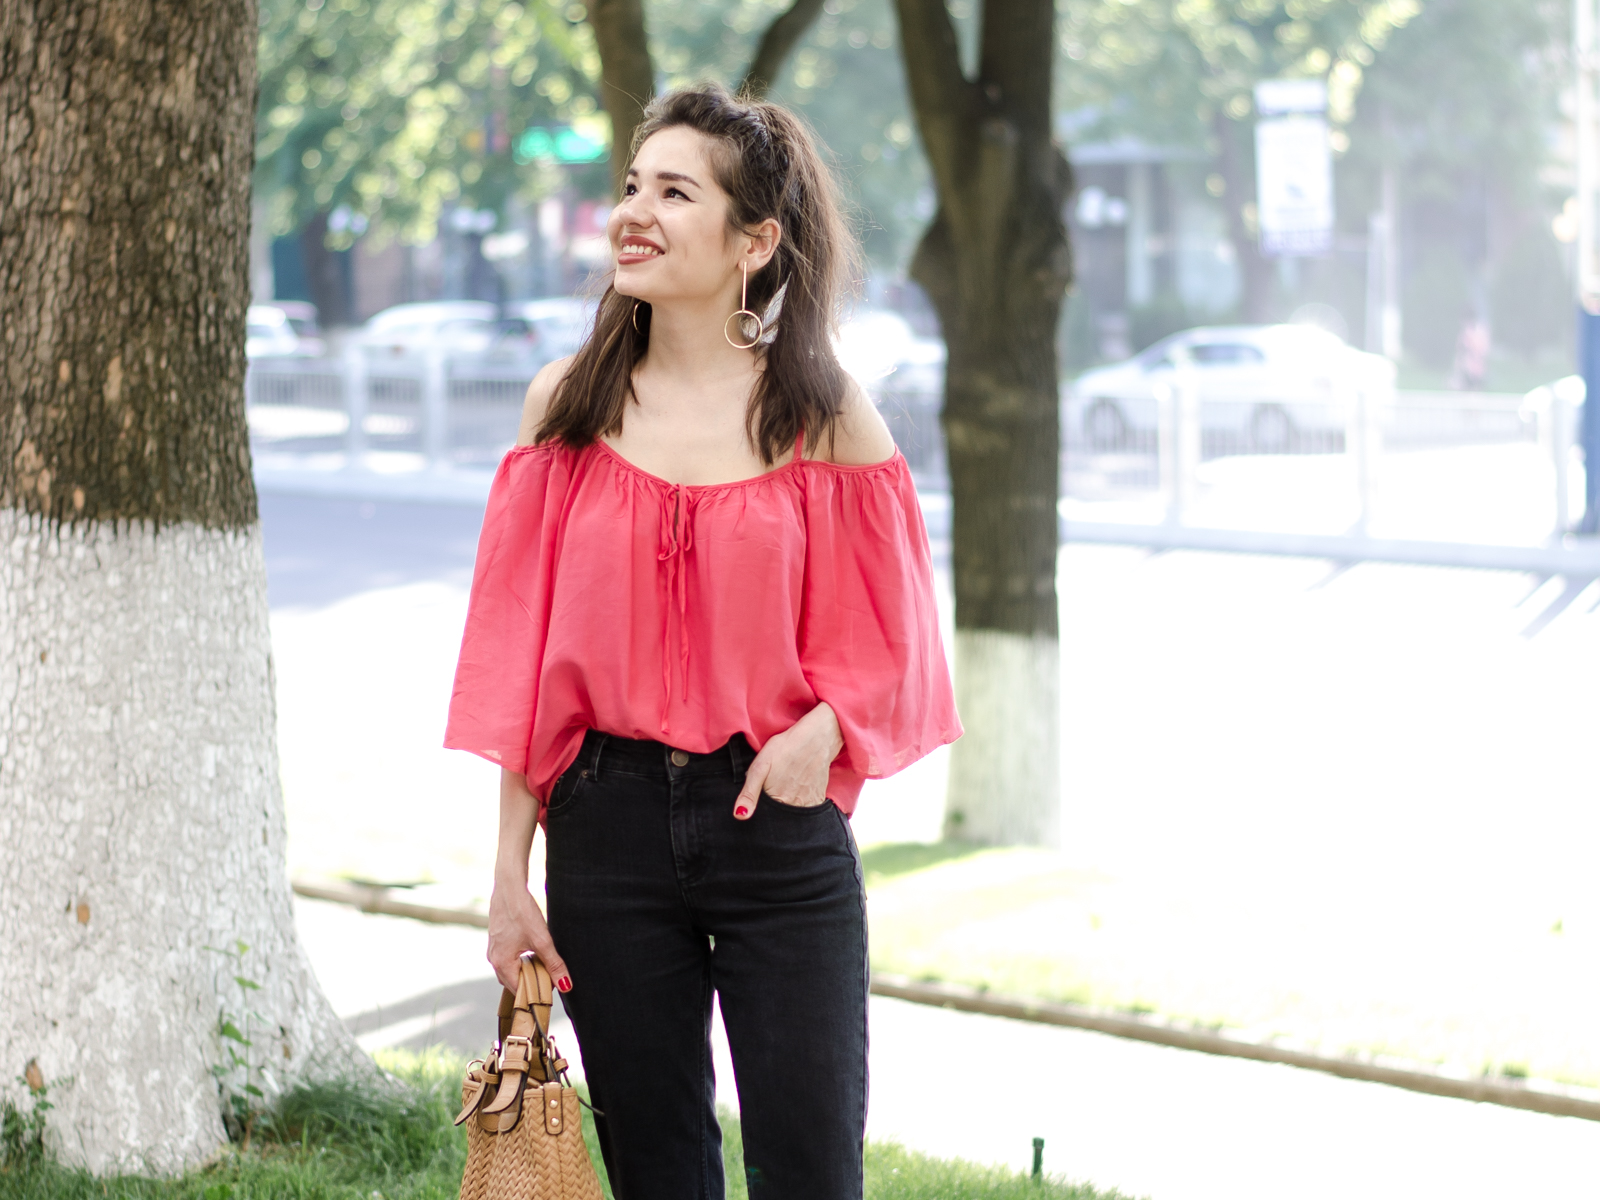 fashion blogger diyorasnotes diyora beta coral top ripped jeans